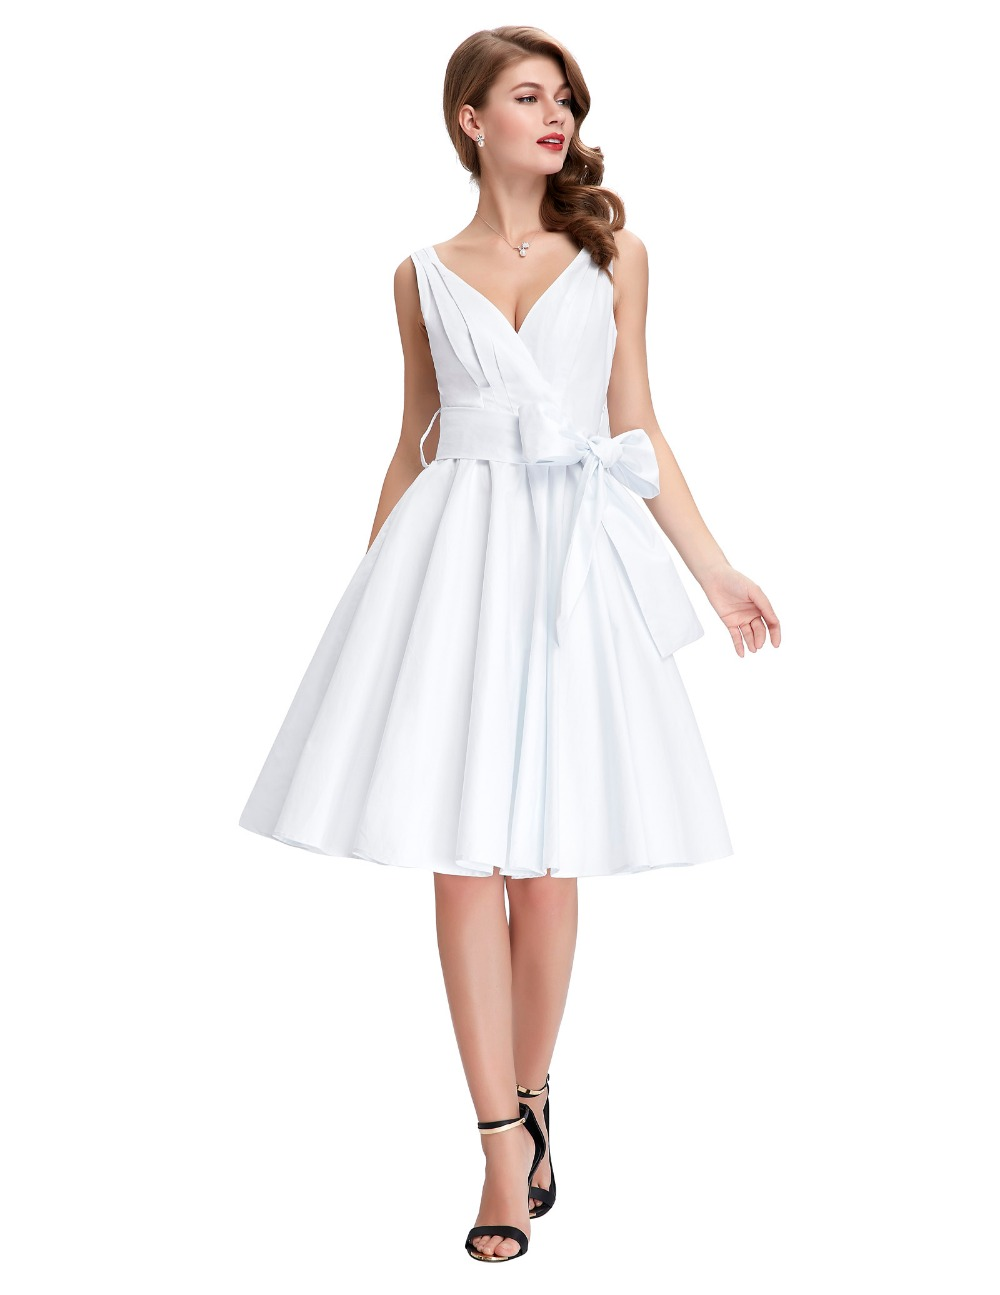 Women summer vintage party dresses 2016 retro 50s style swing pin women summer vintage party dresses 2016 retro 50s style swing pin up plus size clothing vestidos femininos sexy formal work wear in dresses from womens ombrellifo Gallery